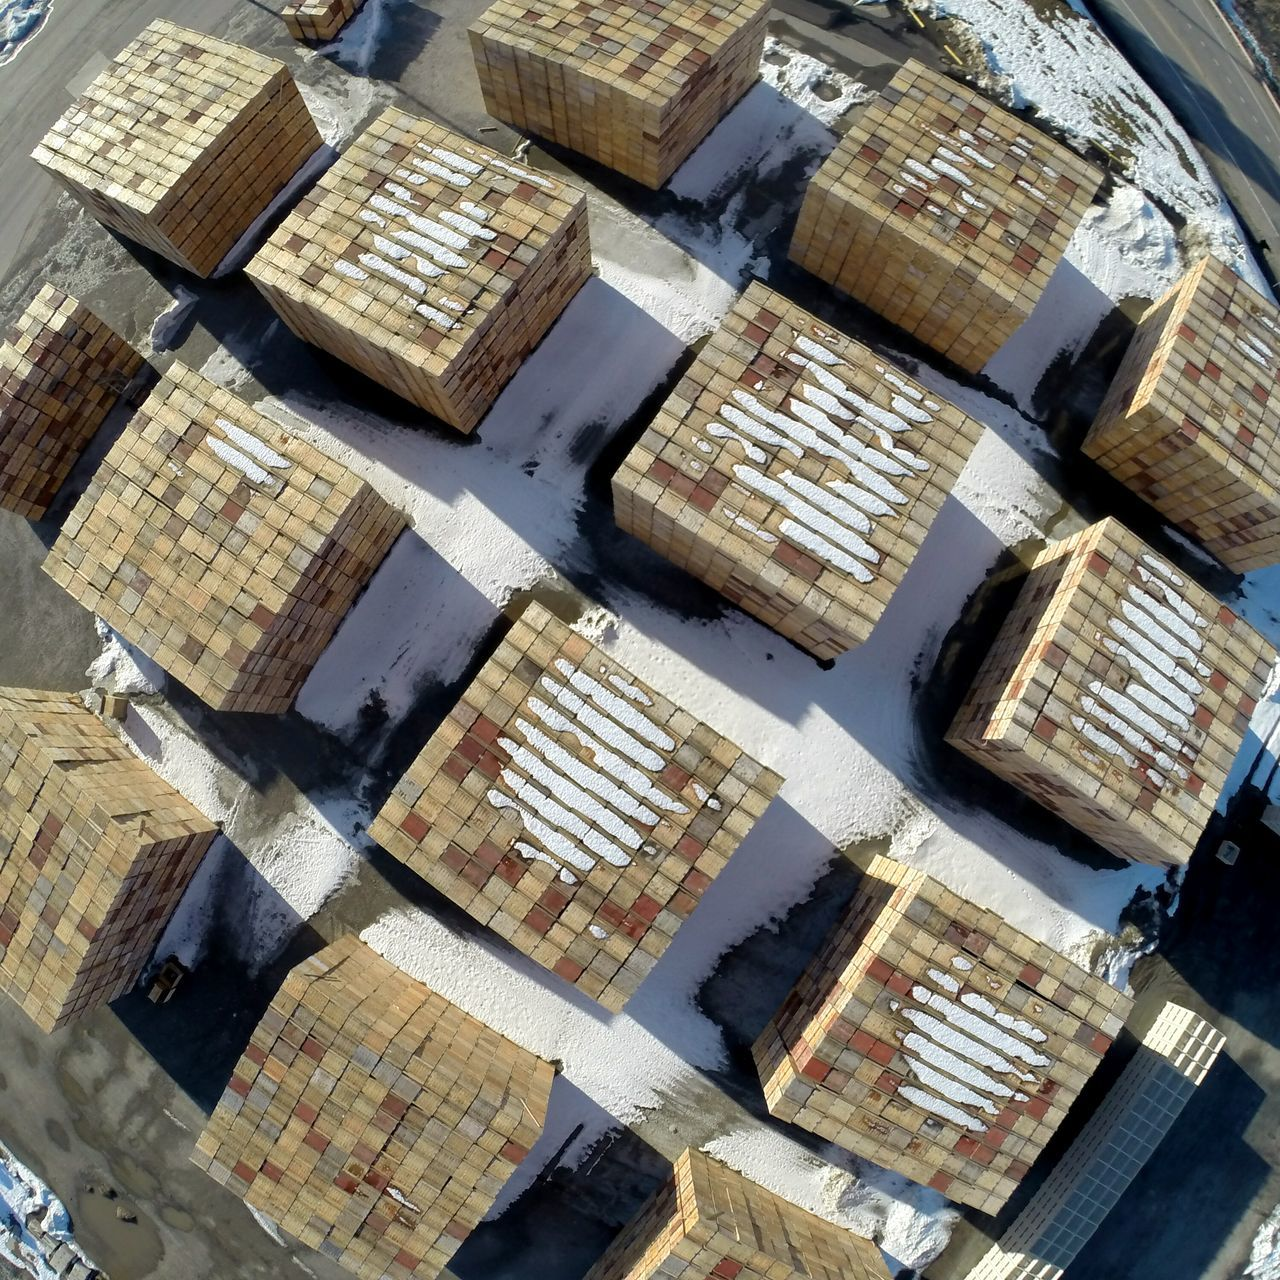 Full Frame Pattern No People Backgrounds Outdoors Day Looking Down Boxes Stacked Aerial View Drone  Aerial Shot Flying High Factory Industry Commerce Business Supply And Demand  Apple Apples Orchard Orchards Apple - Fruit Pattern Pieces